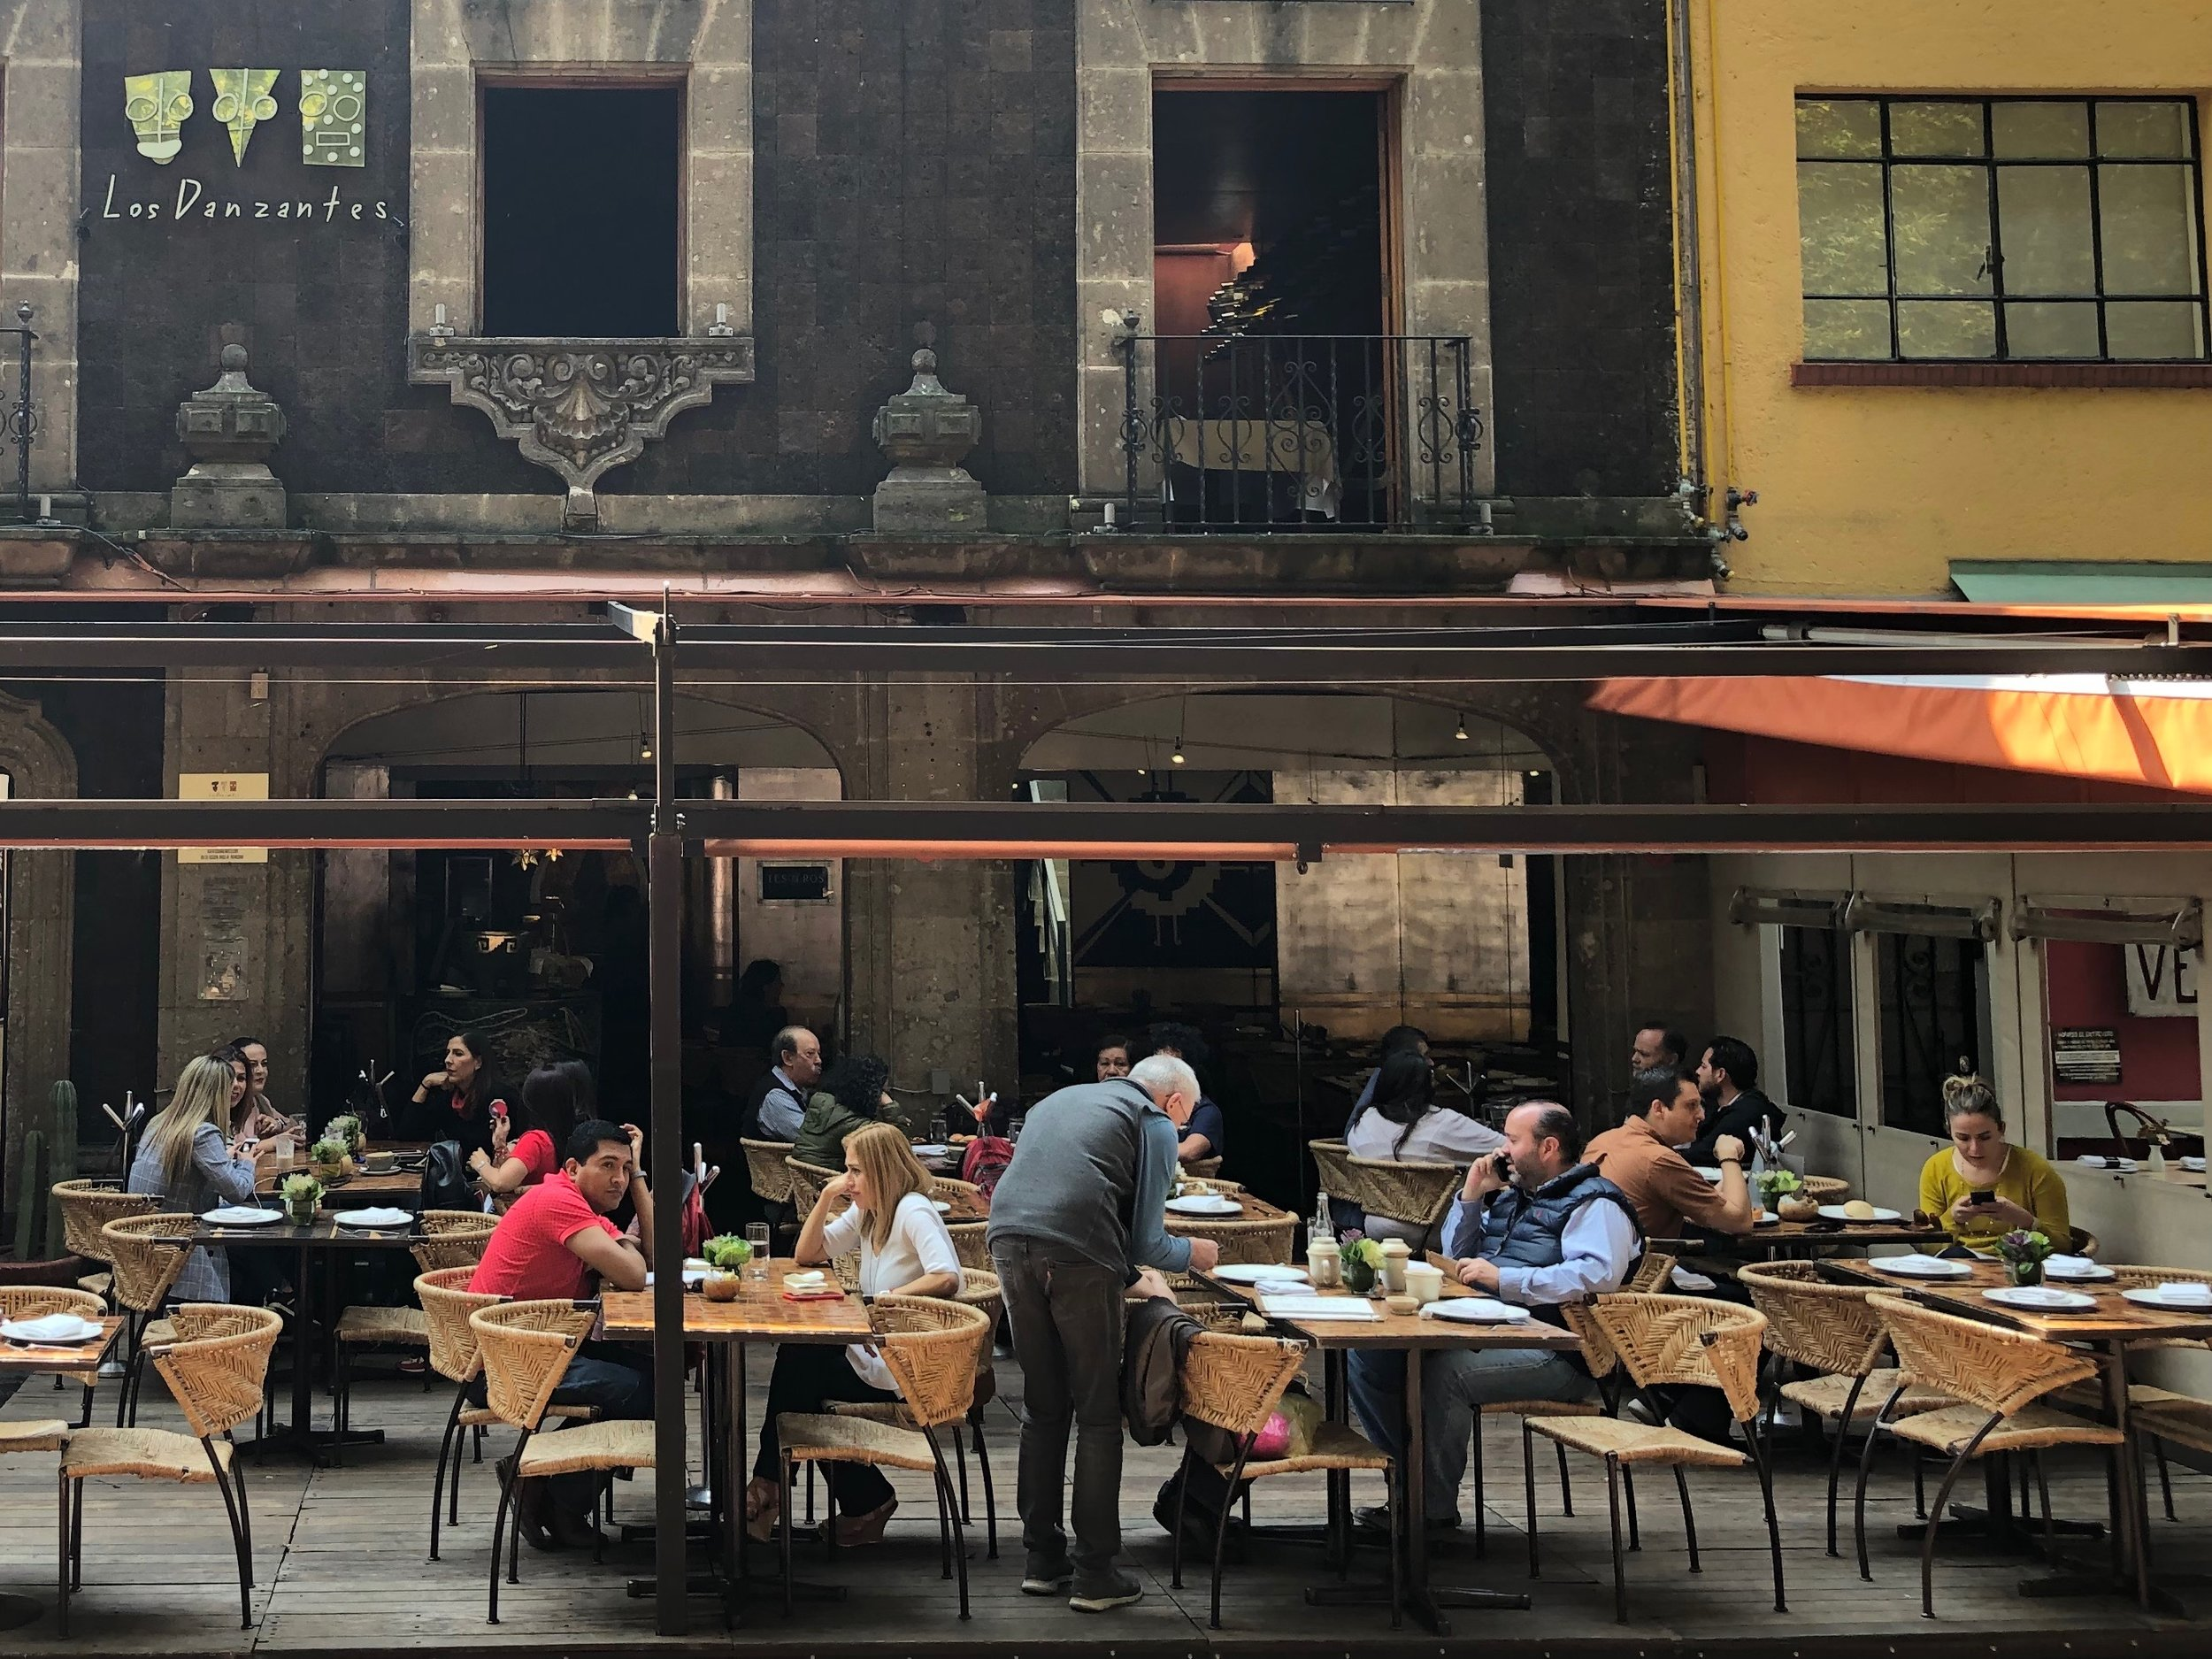 Grab a bite on the patio of Los Danzantes, just off the park, for good food and people-watching